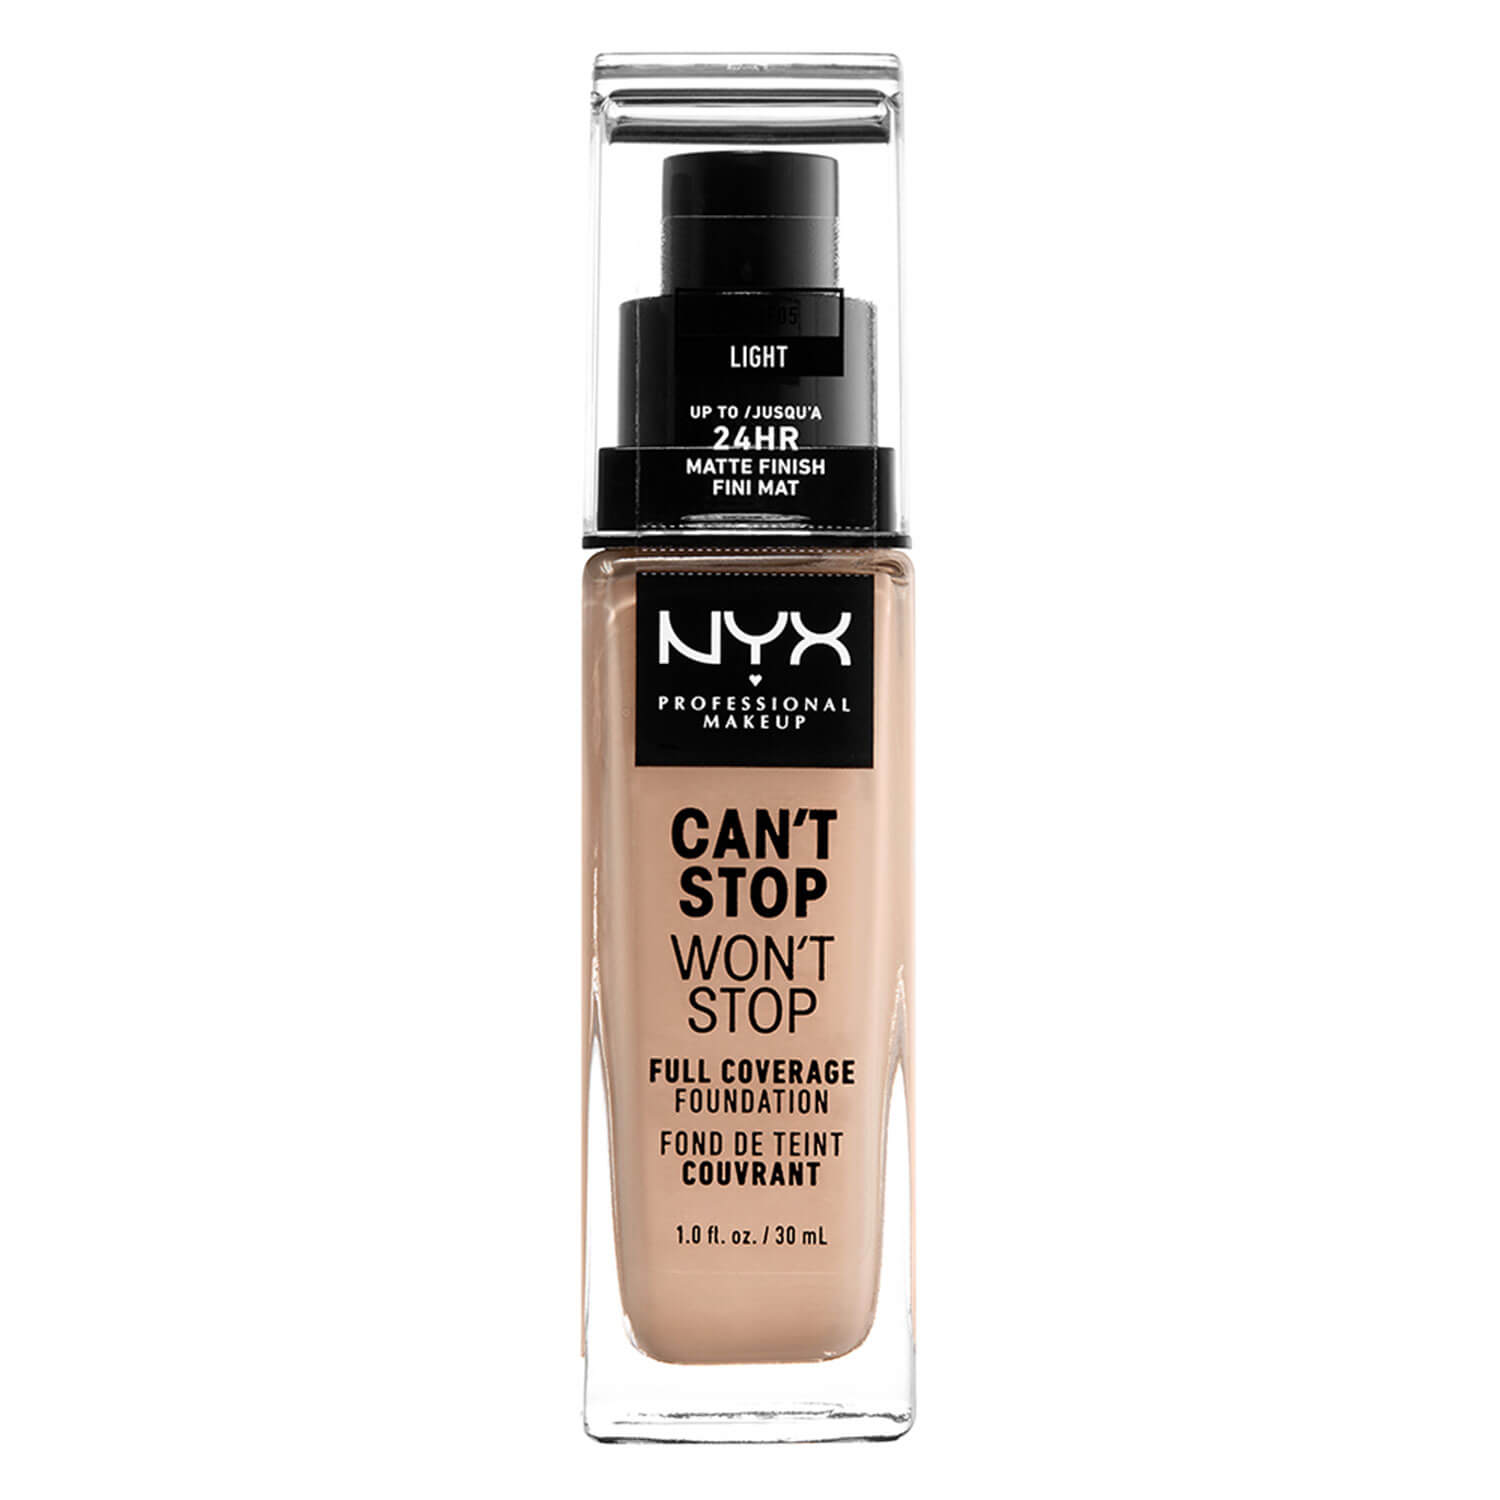 Can't Stop Won't Stop - Full Coverage Foundation Light